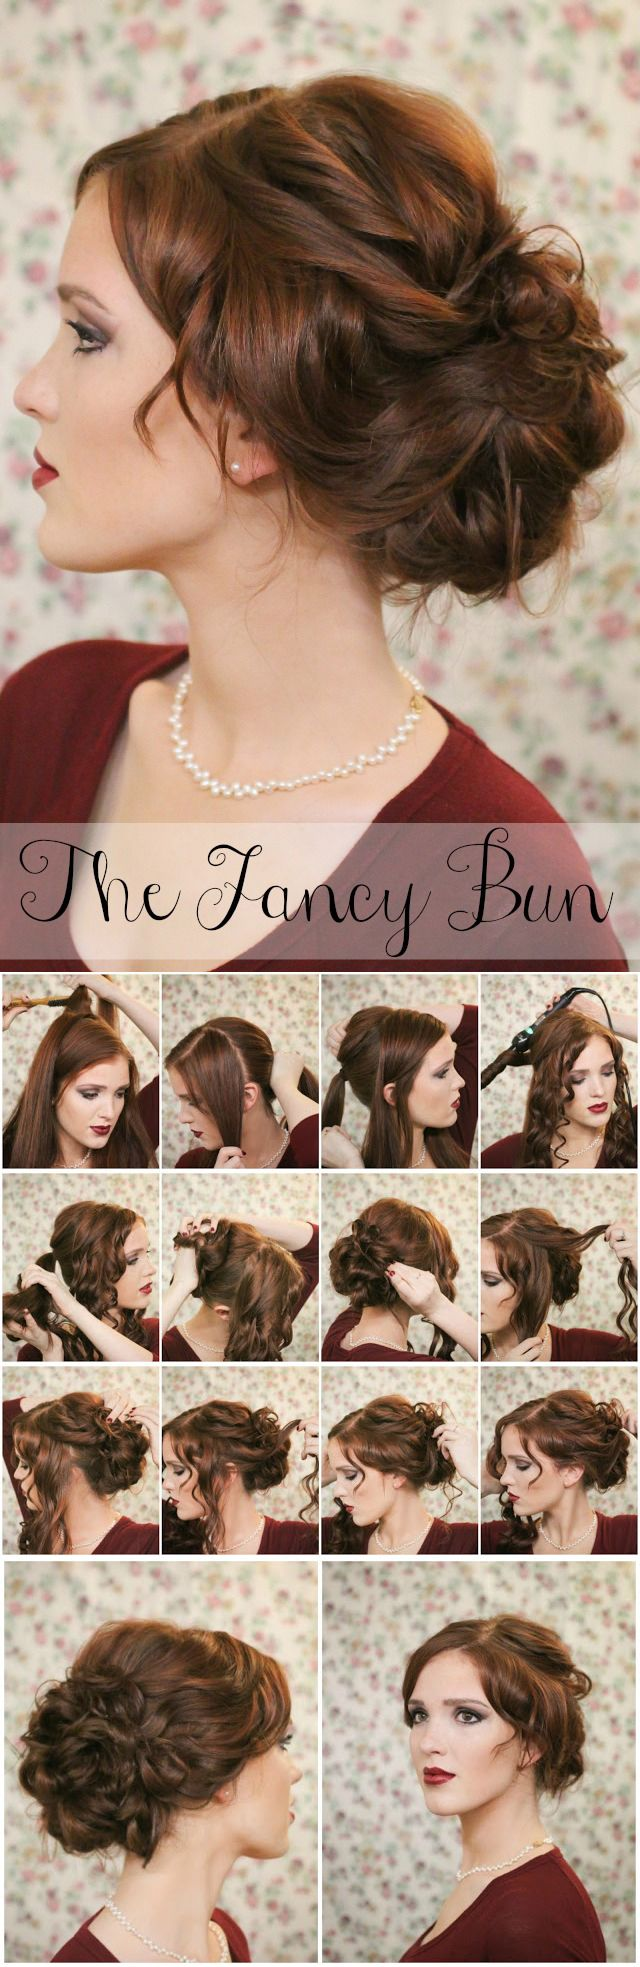 Super Easy Knotted Bun Updo and Simple Bun Hairstyle tutorials  i love this one